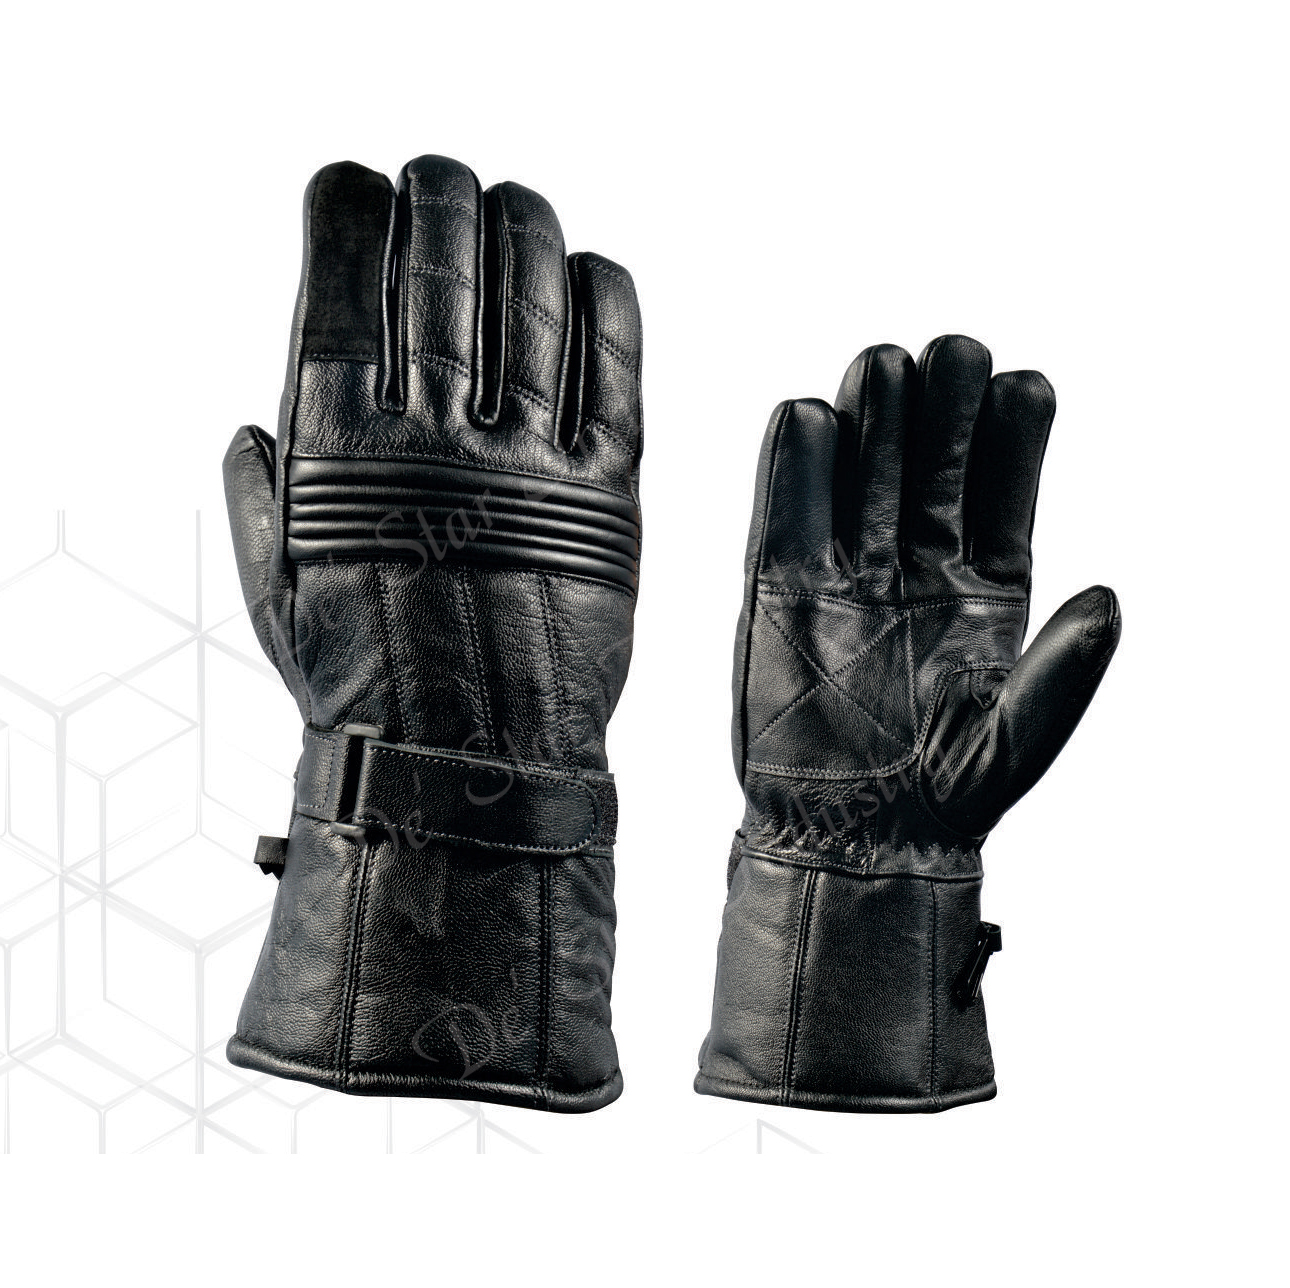 DSI snow leather gloves